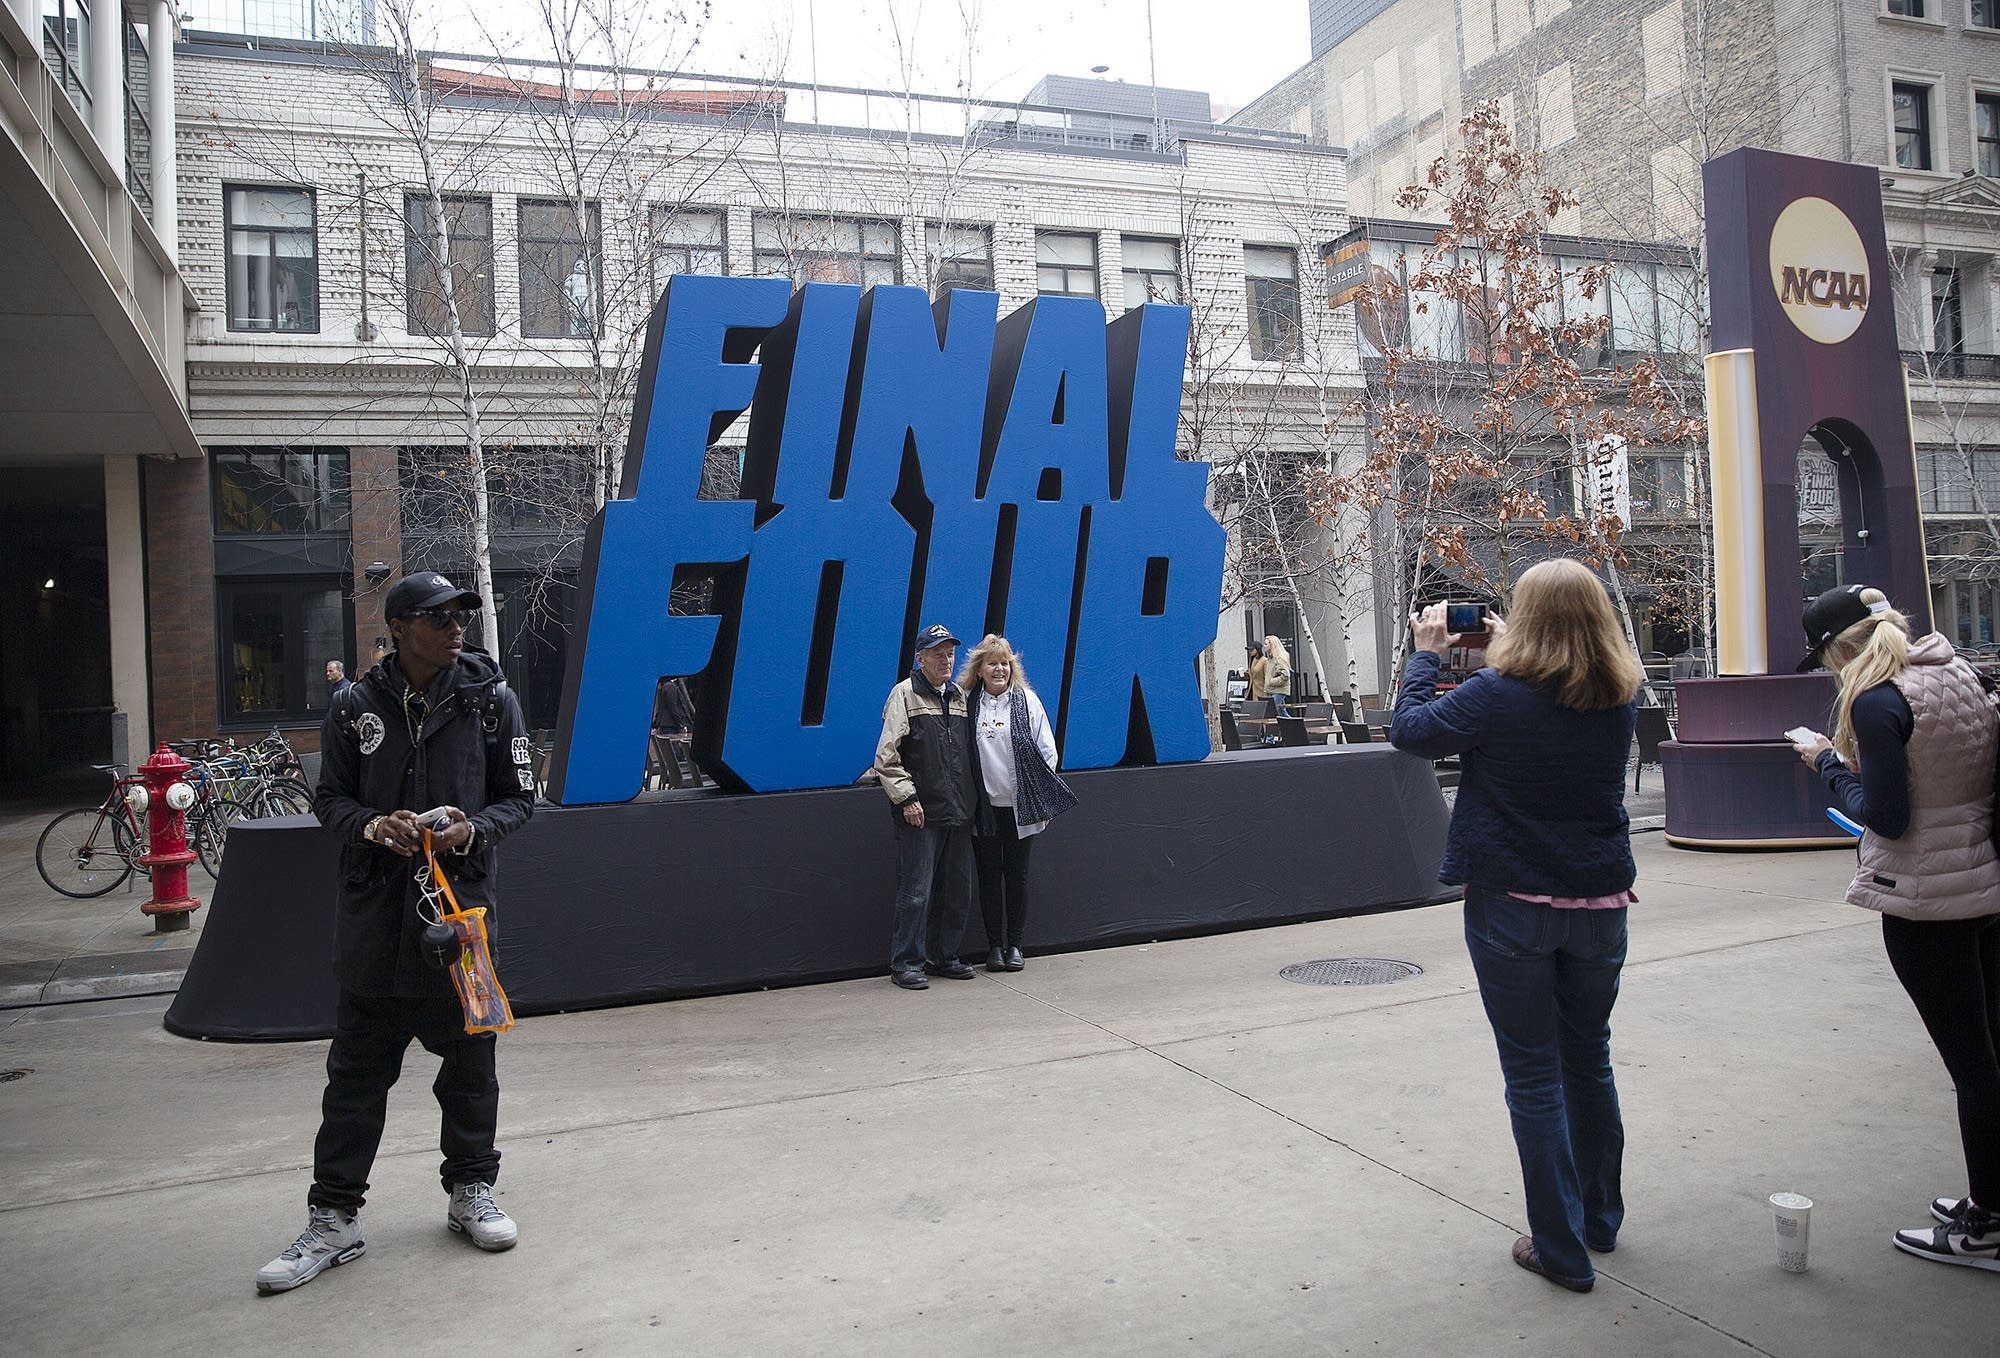 Fans take photos in front of a Final Four sign at Nicollet Mall.